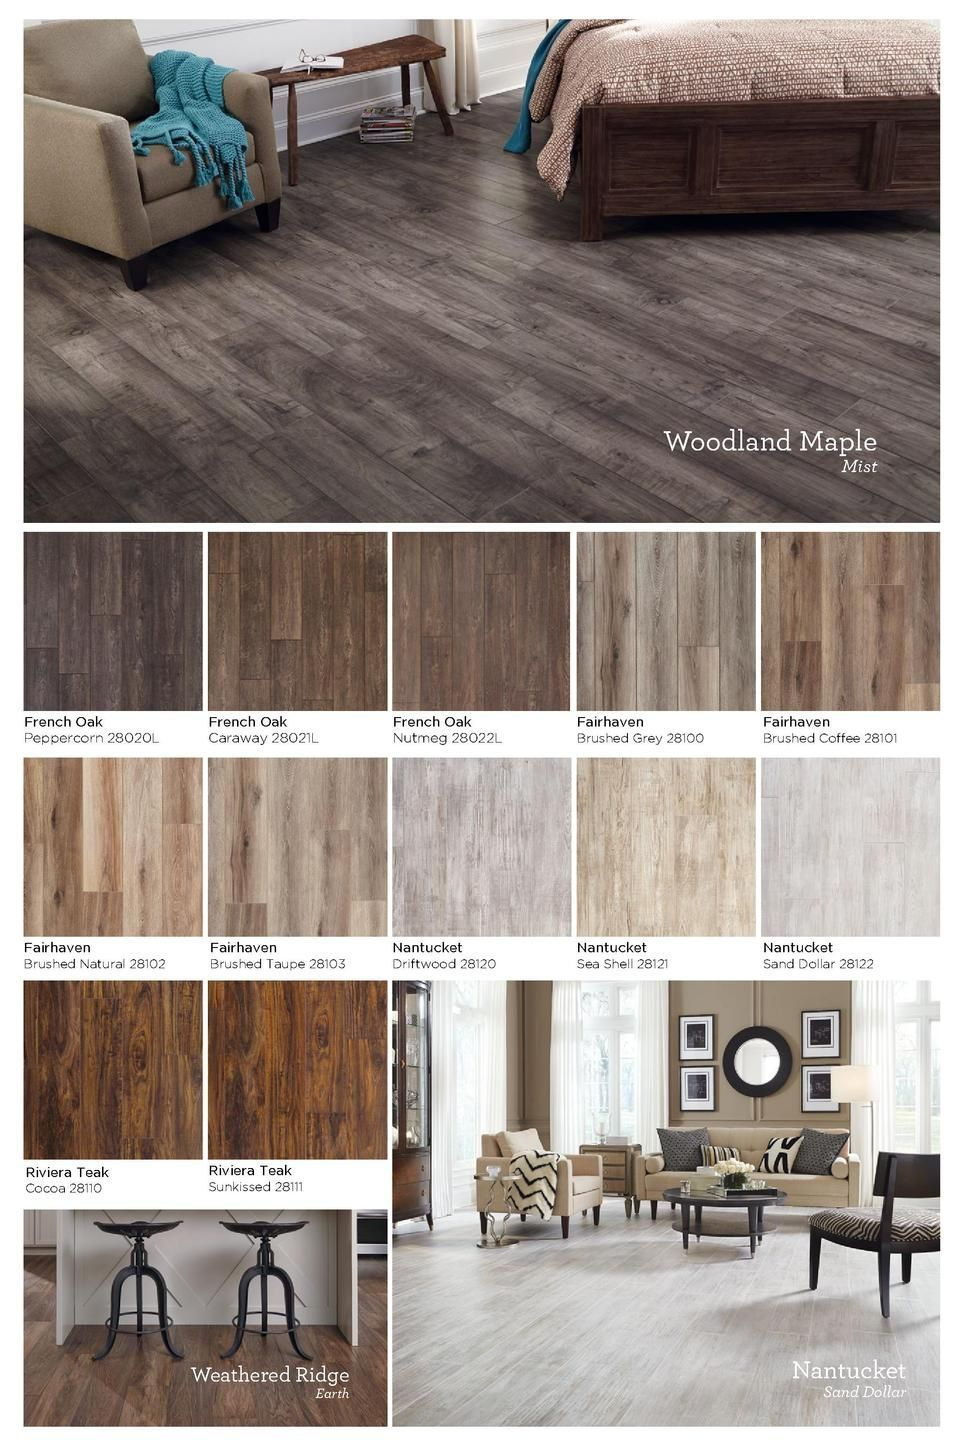 Find And Save Ideas About Waterproof Laminate Flooring On Pinterest See More Vinyl Wood Bathroom